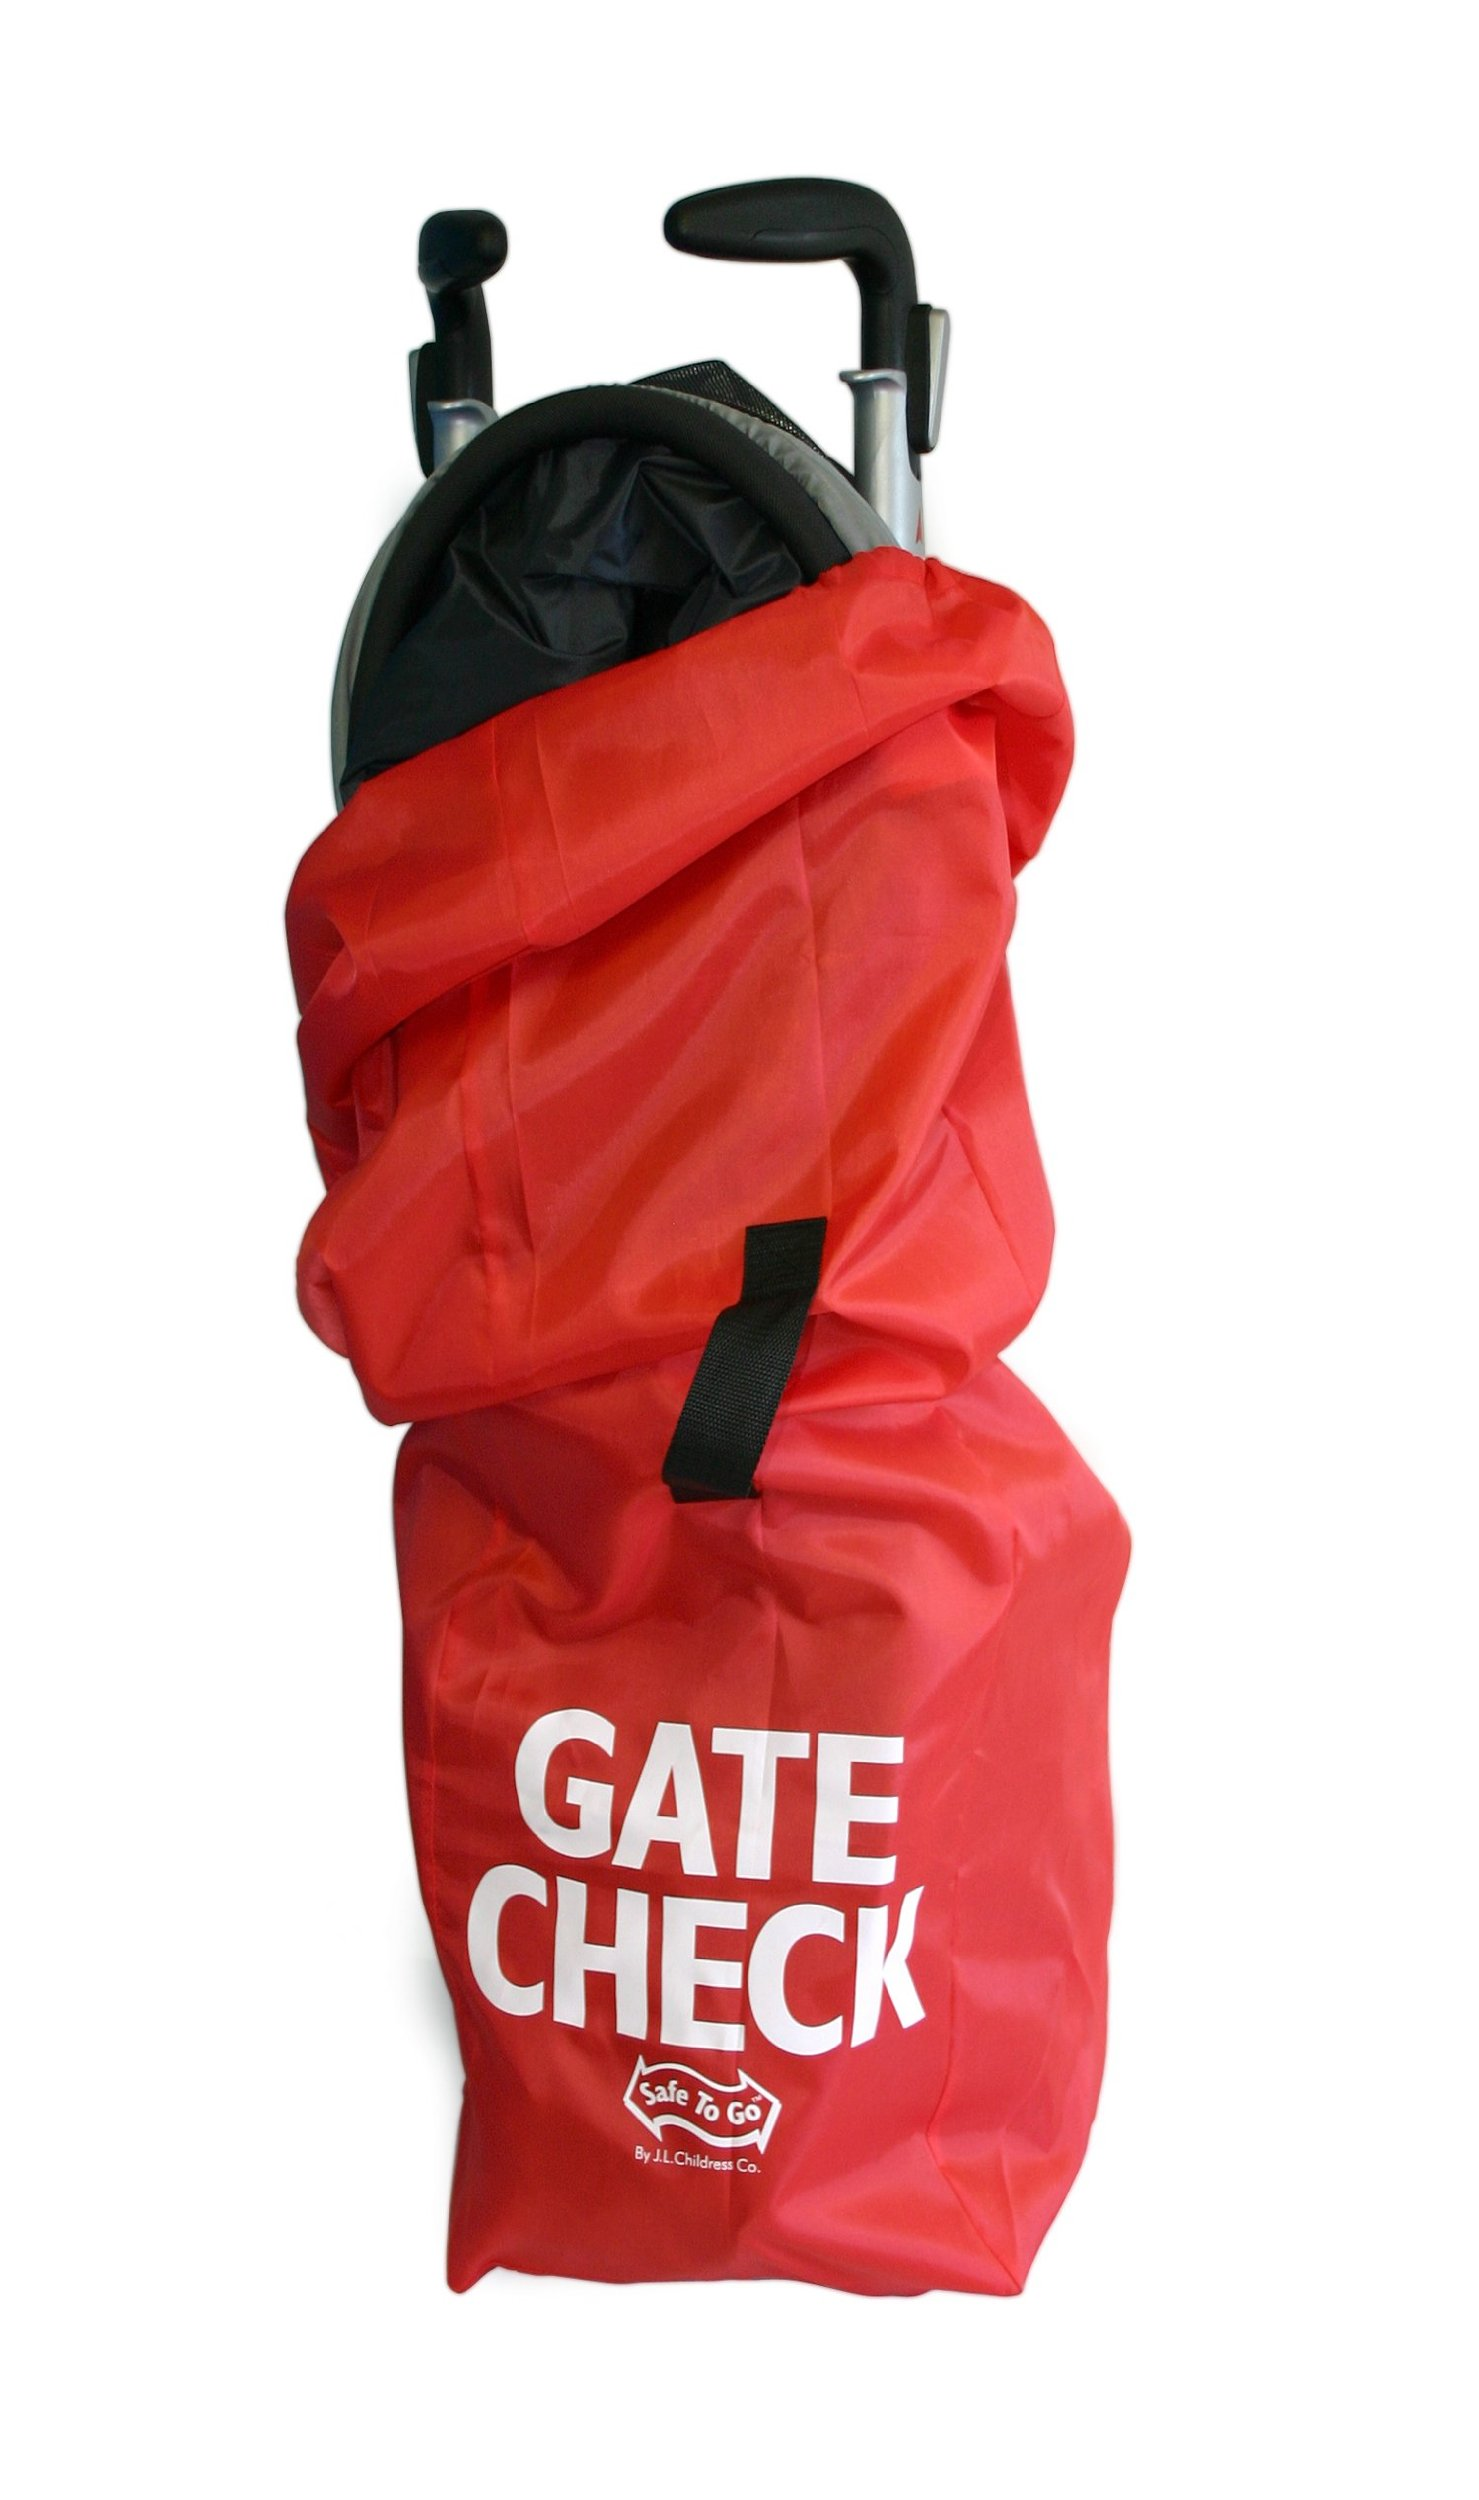 JL Childress Gate Check Bag for Umbrella Strollers, Red by J.L. Childress (Image #2)